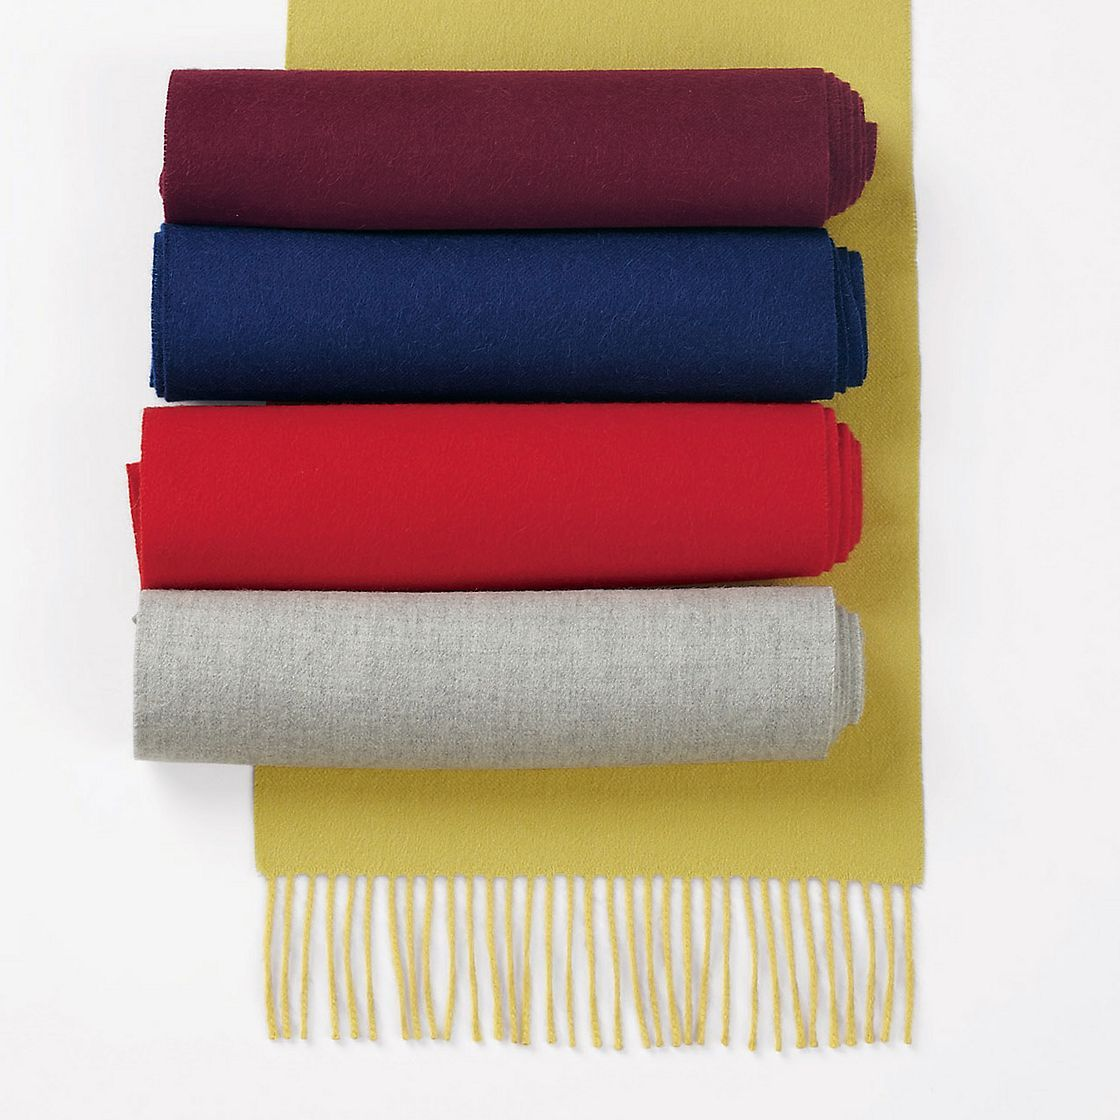 Baby Alpaca Fringe Scarf - Wrap yourself in this sumptuously soft scarf and experience the luxury of rare and prized baby alpaca from the Peruvian Andes.